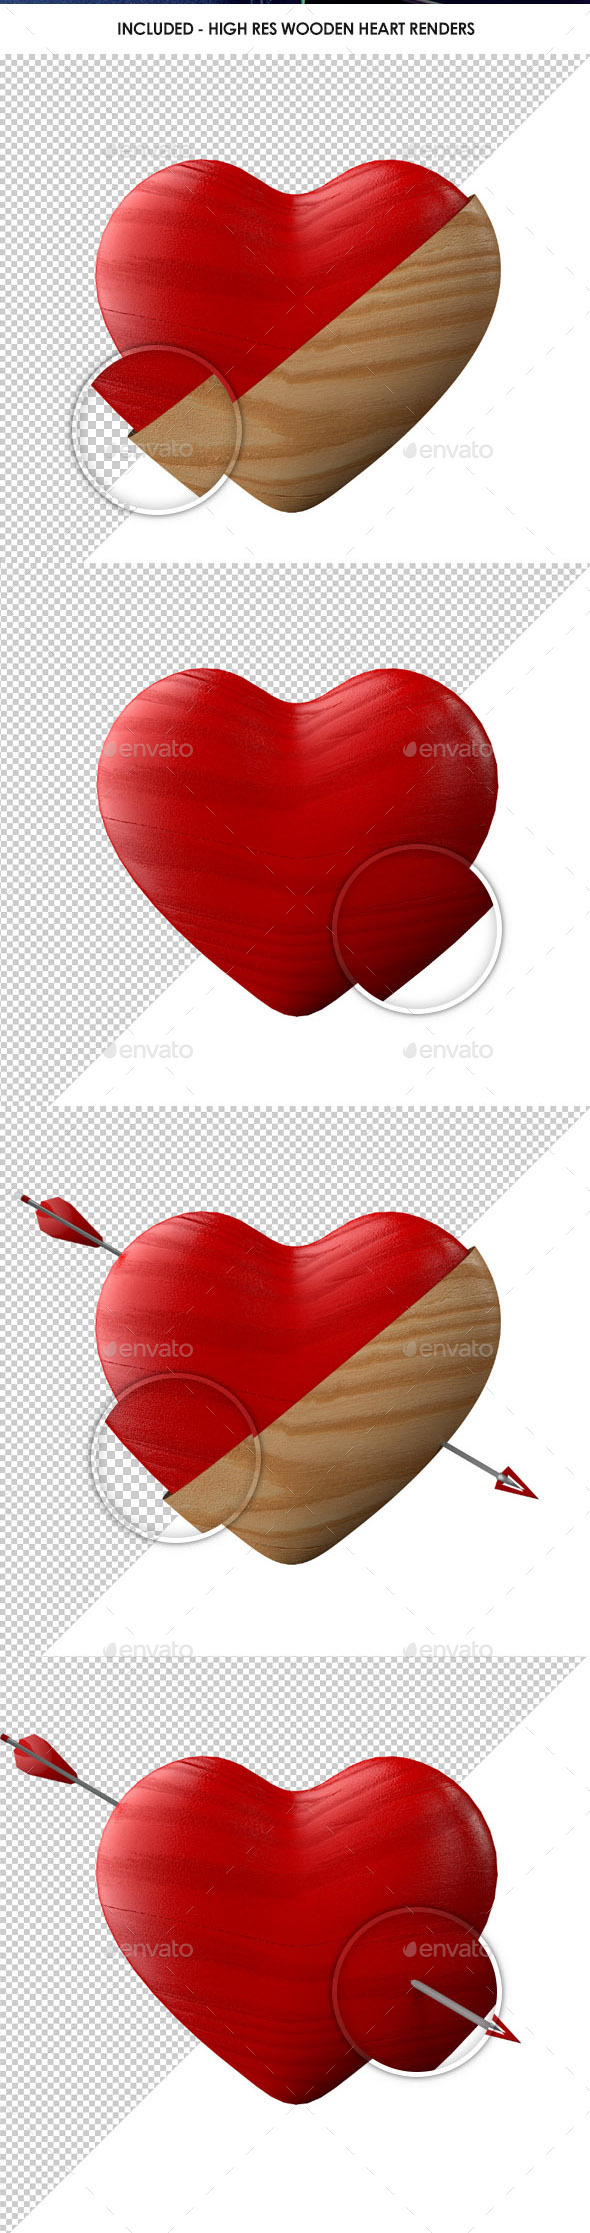 GraphicRiver Retro Shabby Chic Wooden Heart Renders 9834289